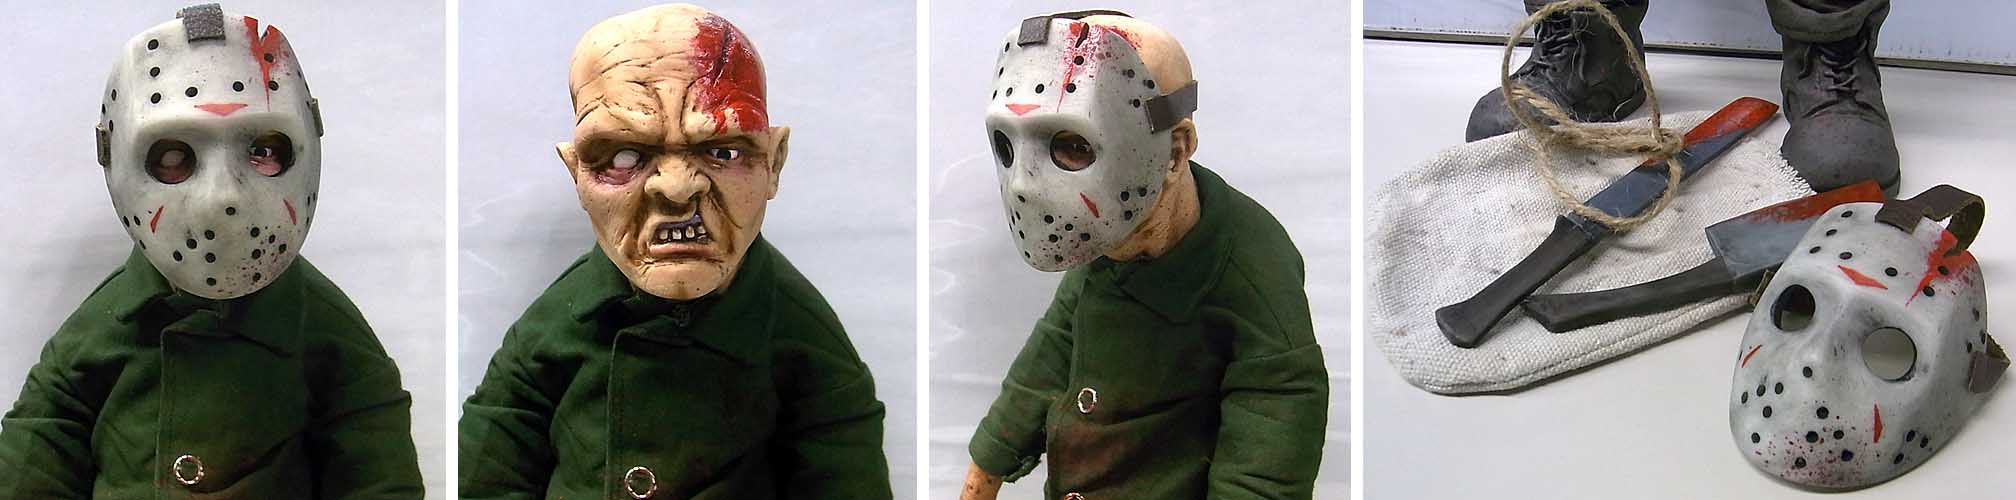 個人ハンドメイド品 MODERN HORROR CUSTOM DOLL JASON VOORHEES [C]